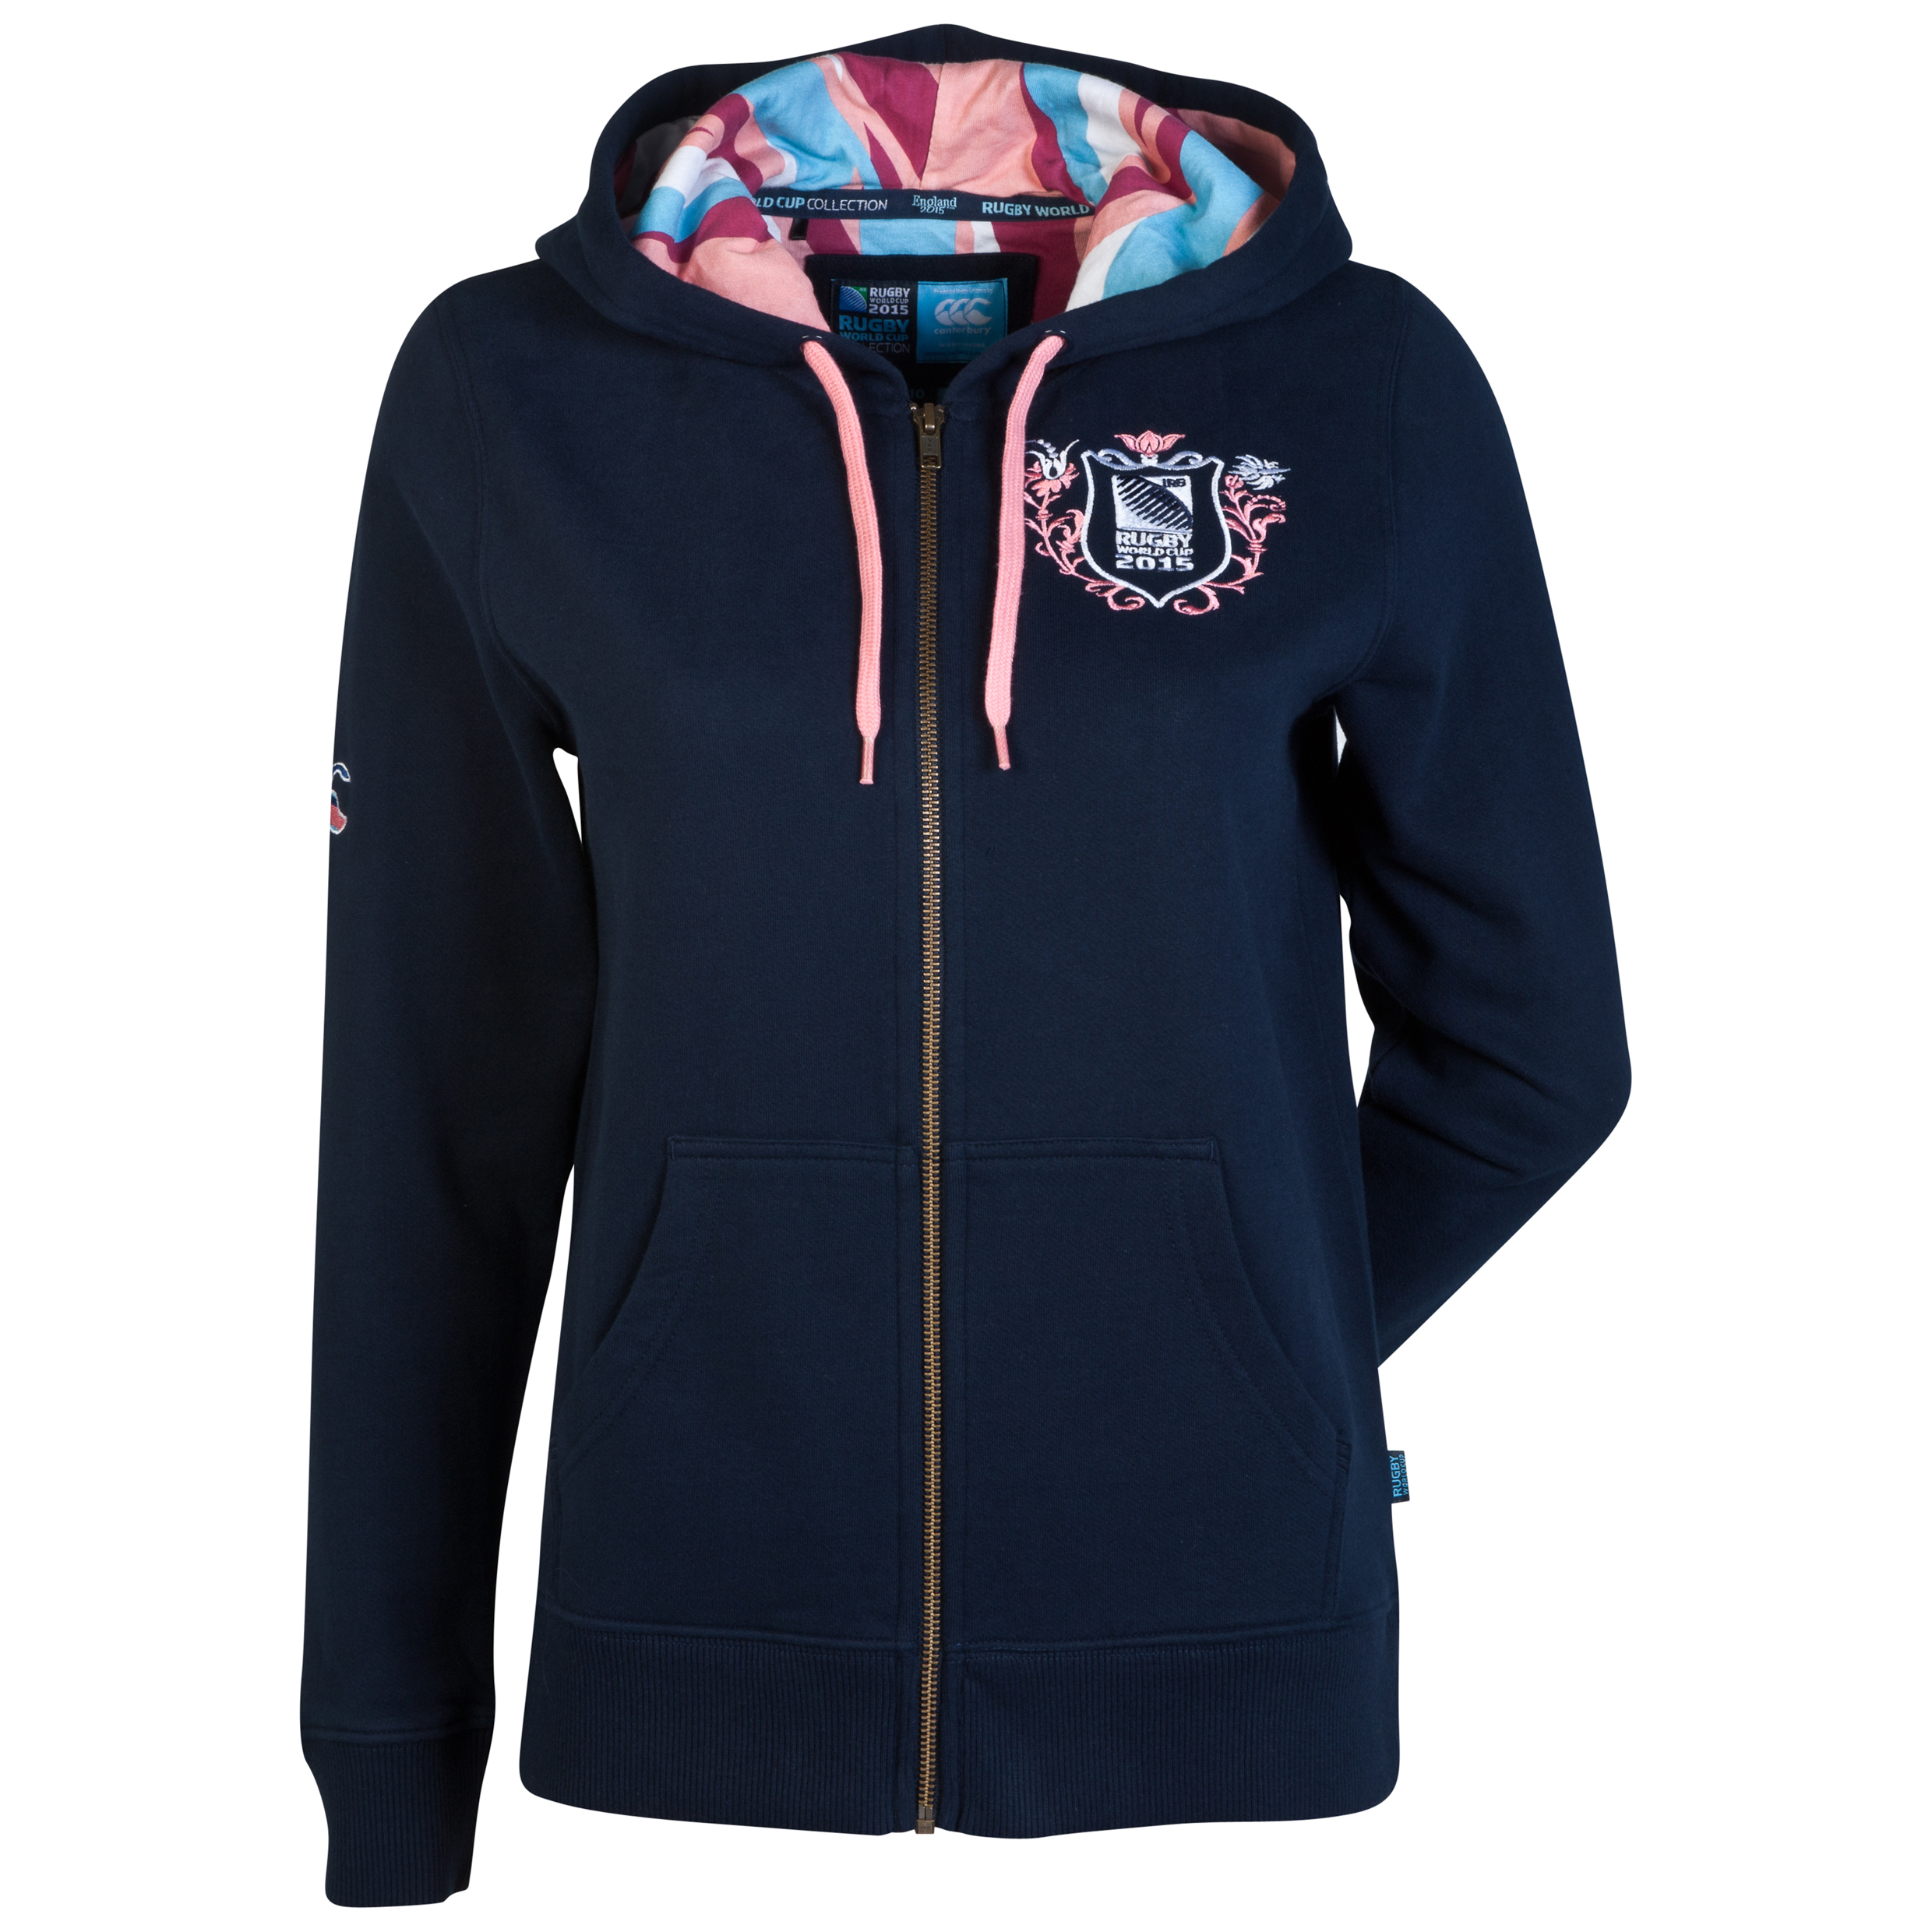 Canterbury Rugby World Cup Legacy Zip Up Hoody - Womens Navy